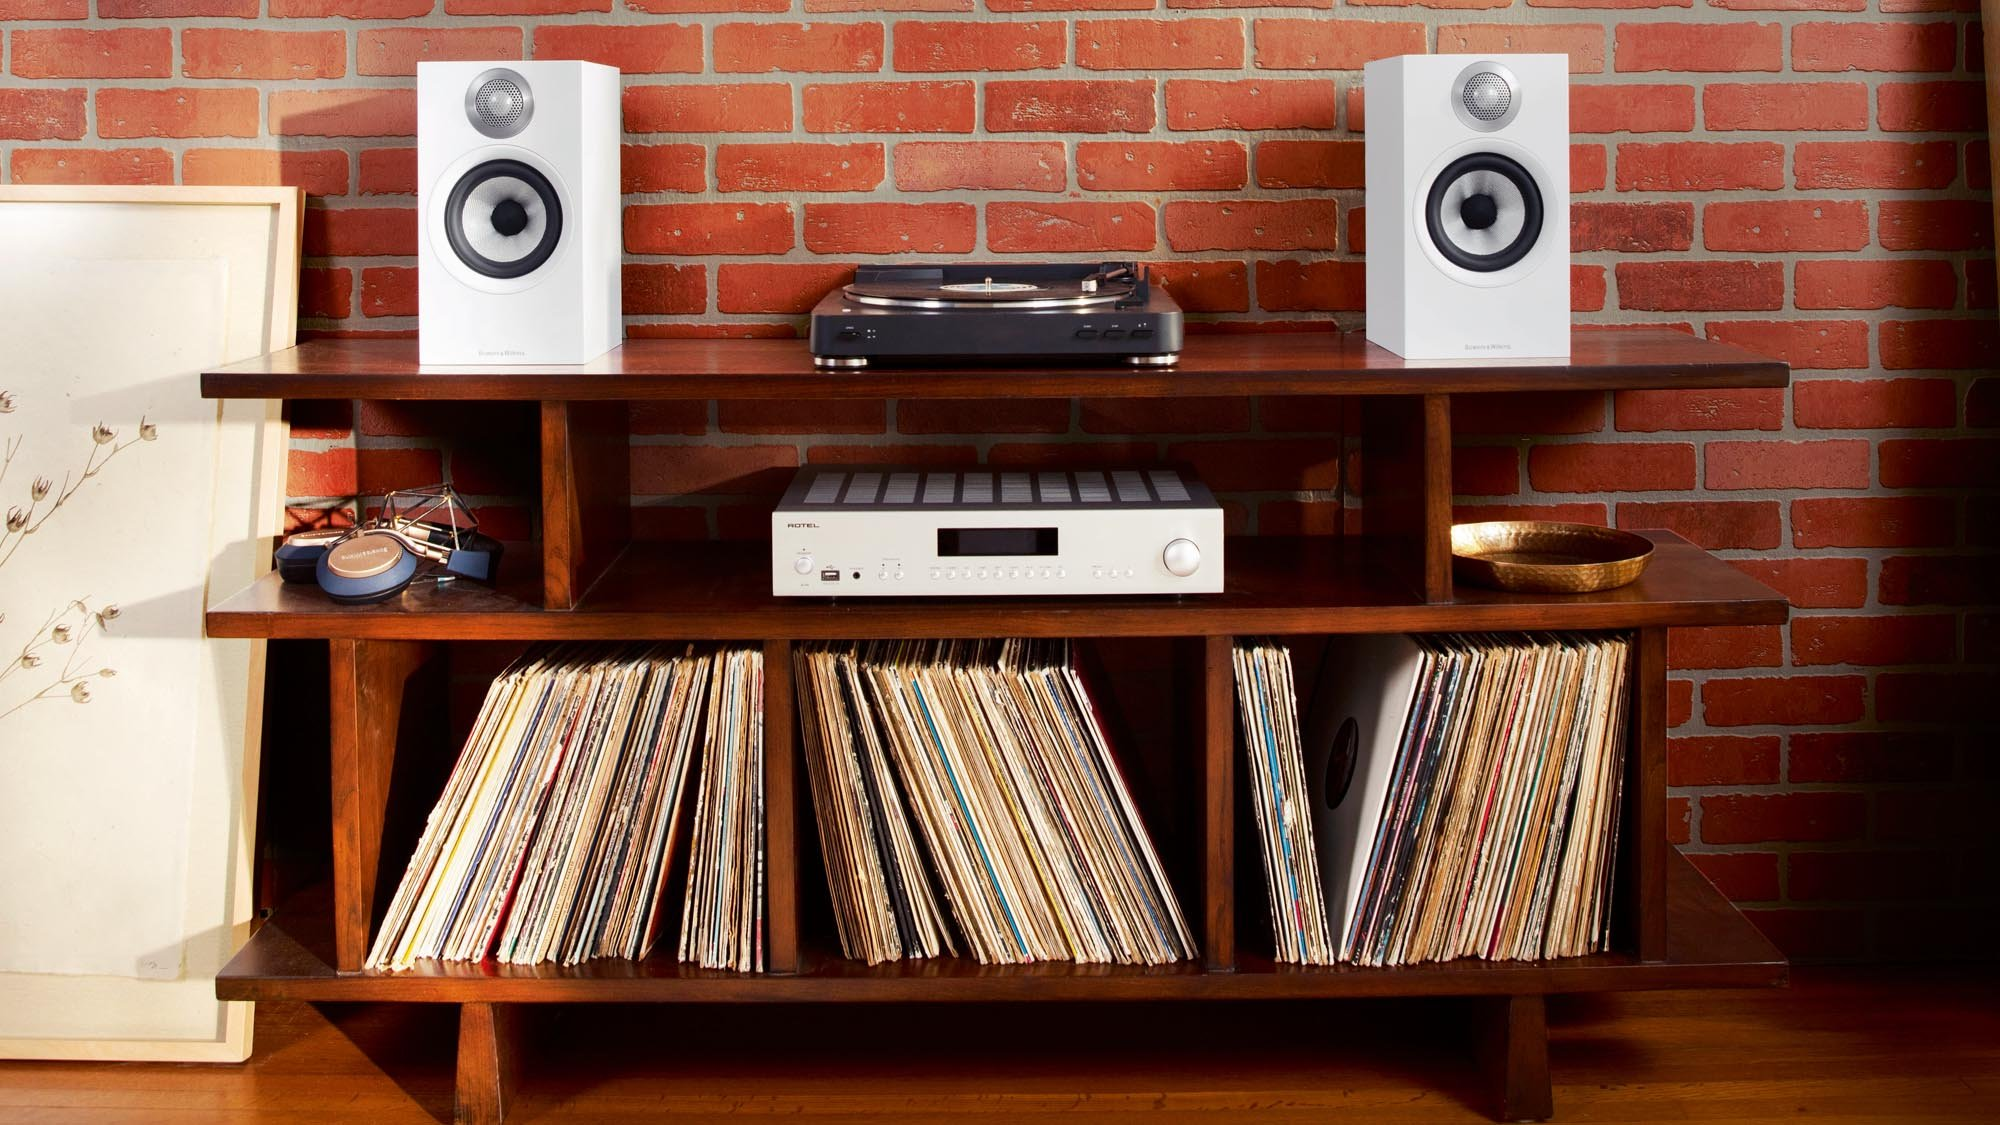 Best bookshelf speakers 2020: The best compact stereo speakers, from £100 |  Expert Reviews